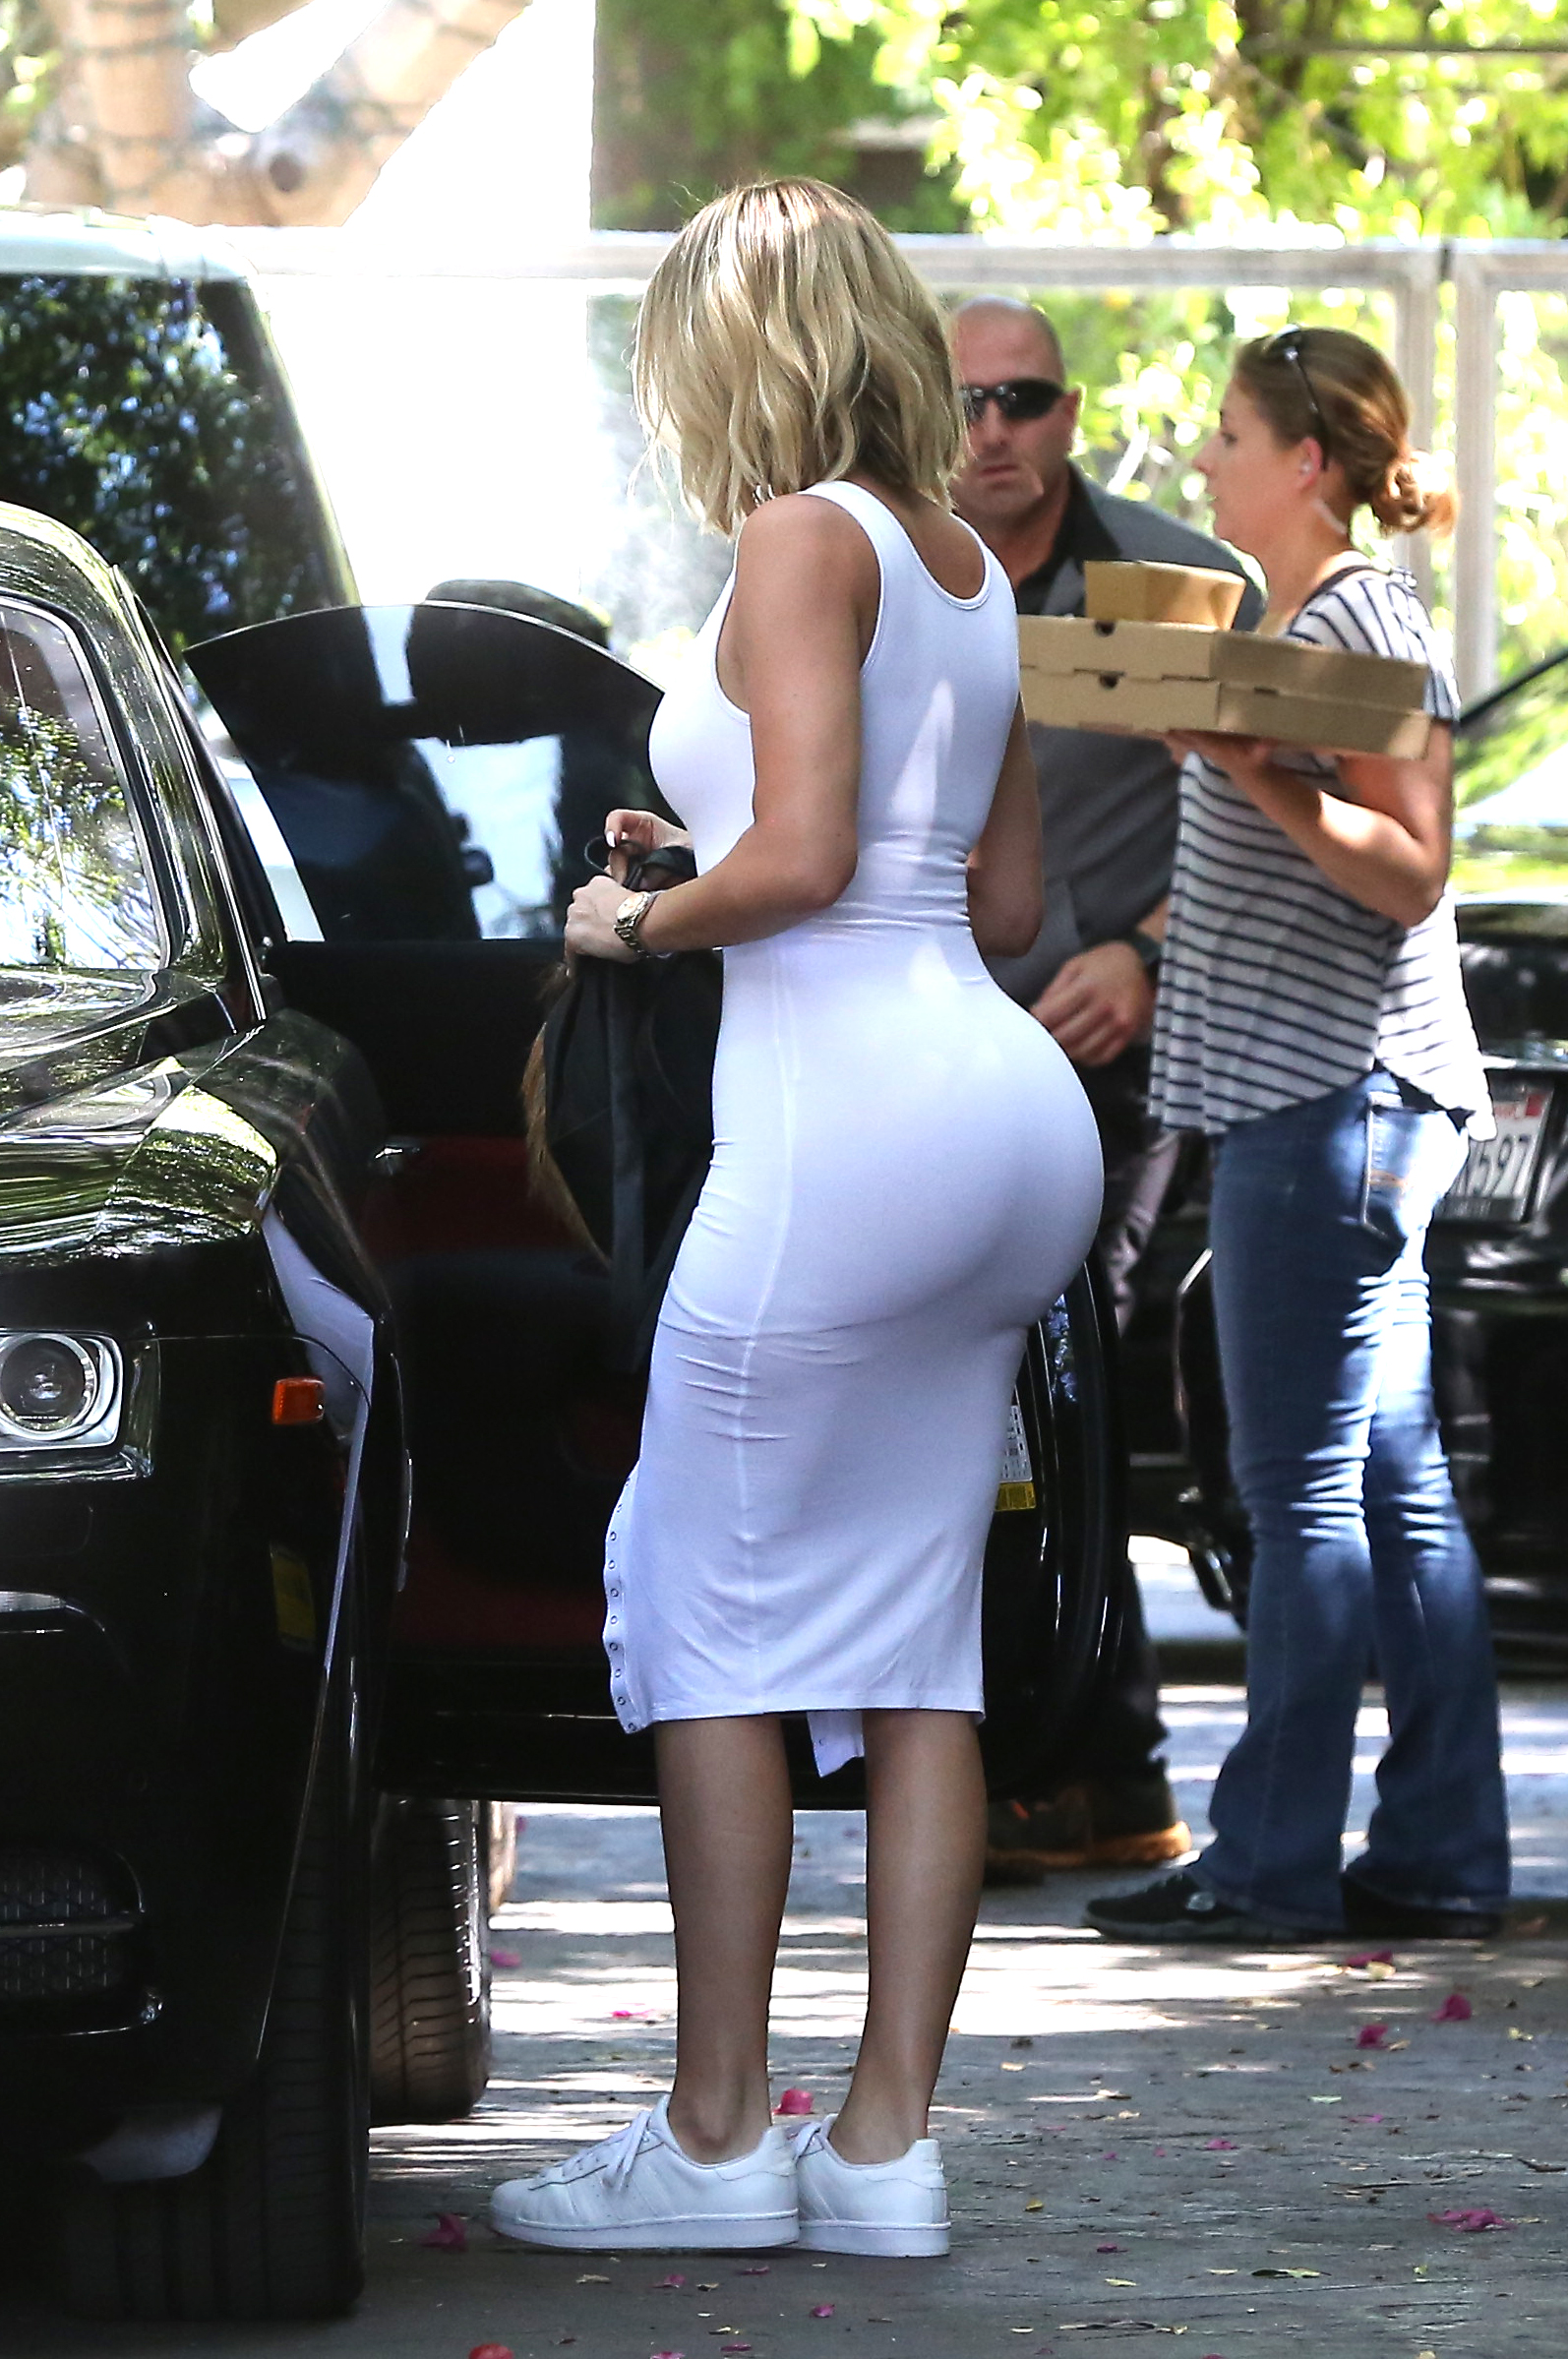 Big ass tight dress